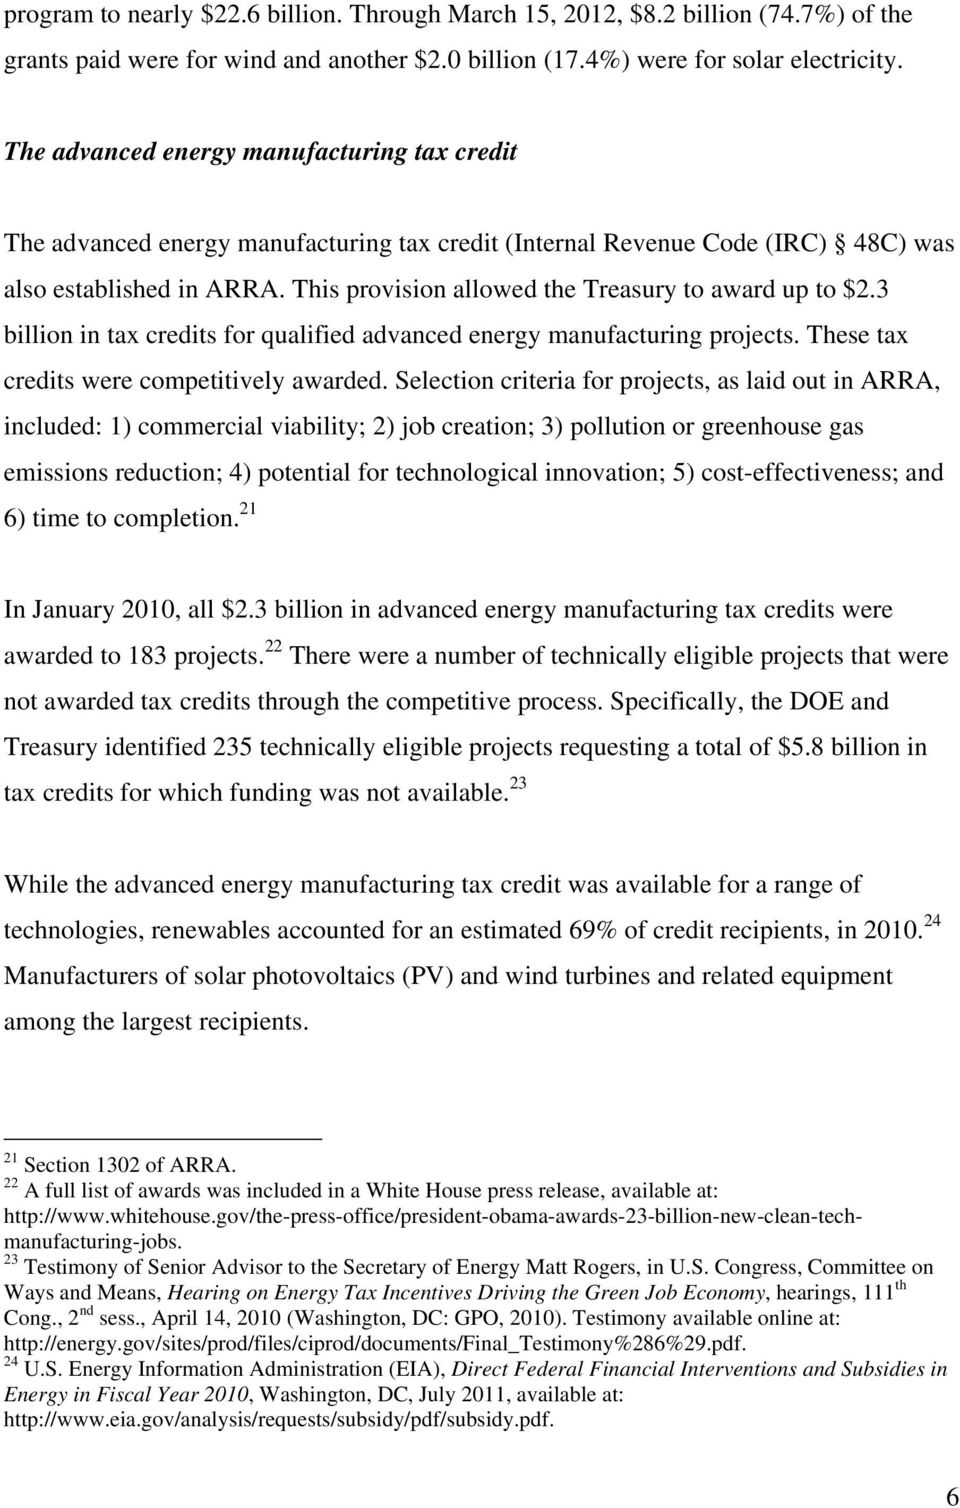 This provision allowed the Treasury to award up to $2.3 billion in tax credits for qualified advanced energy manufacturing projects. These tax credits were competitively awarded.